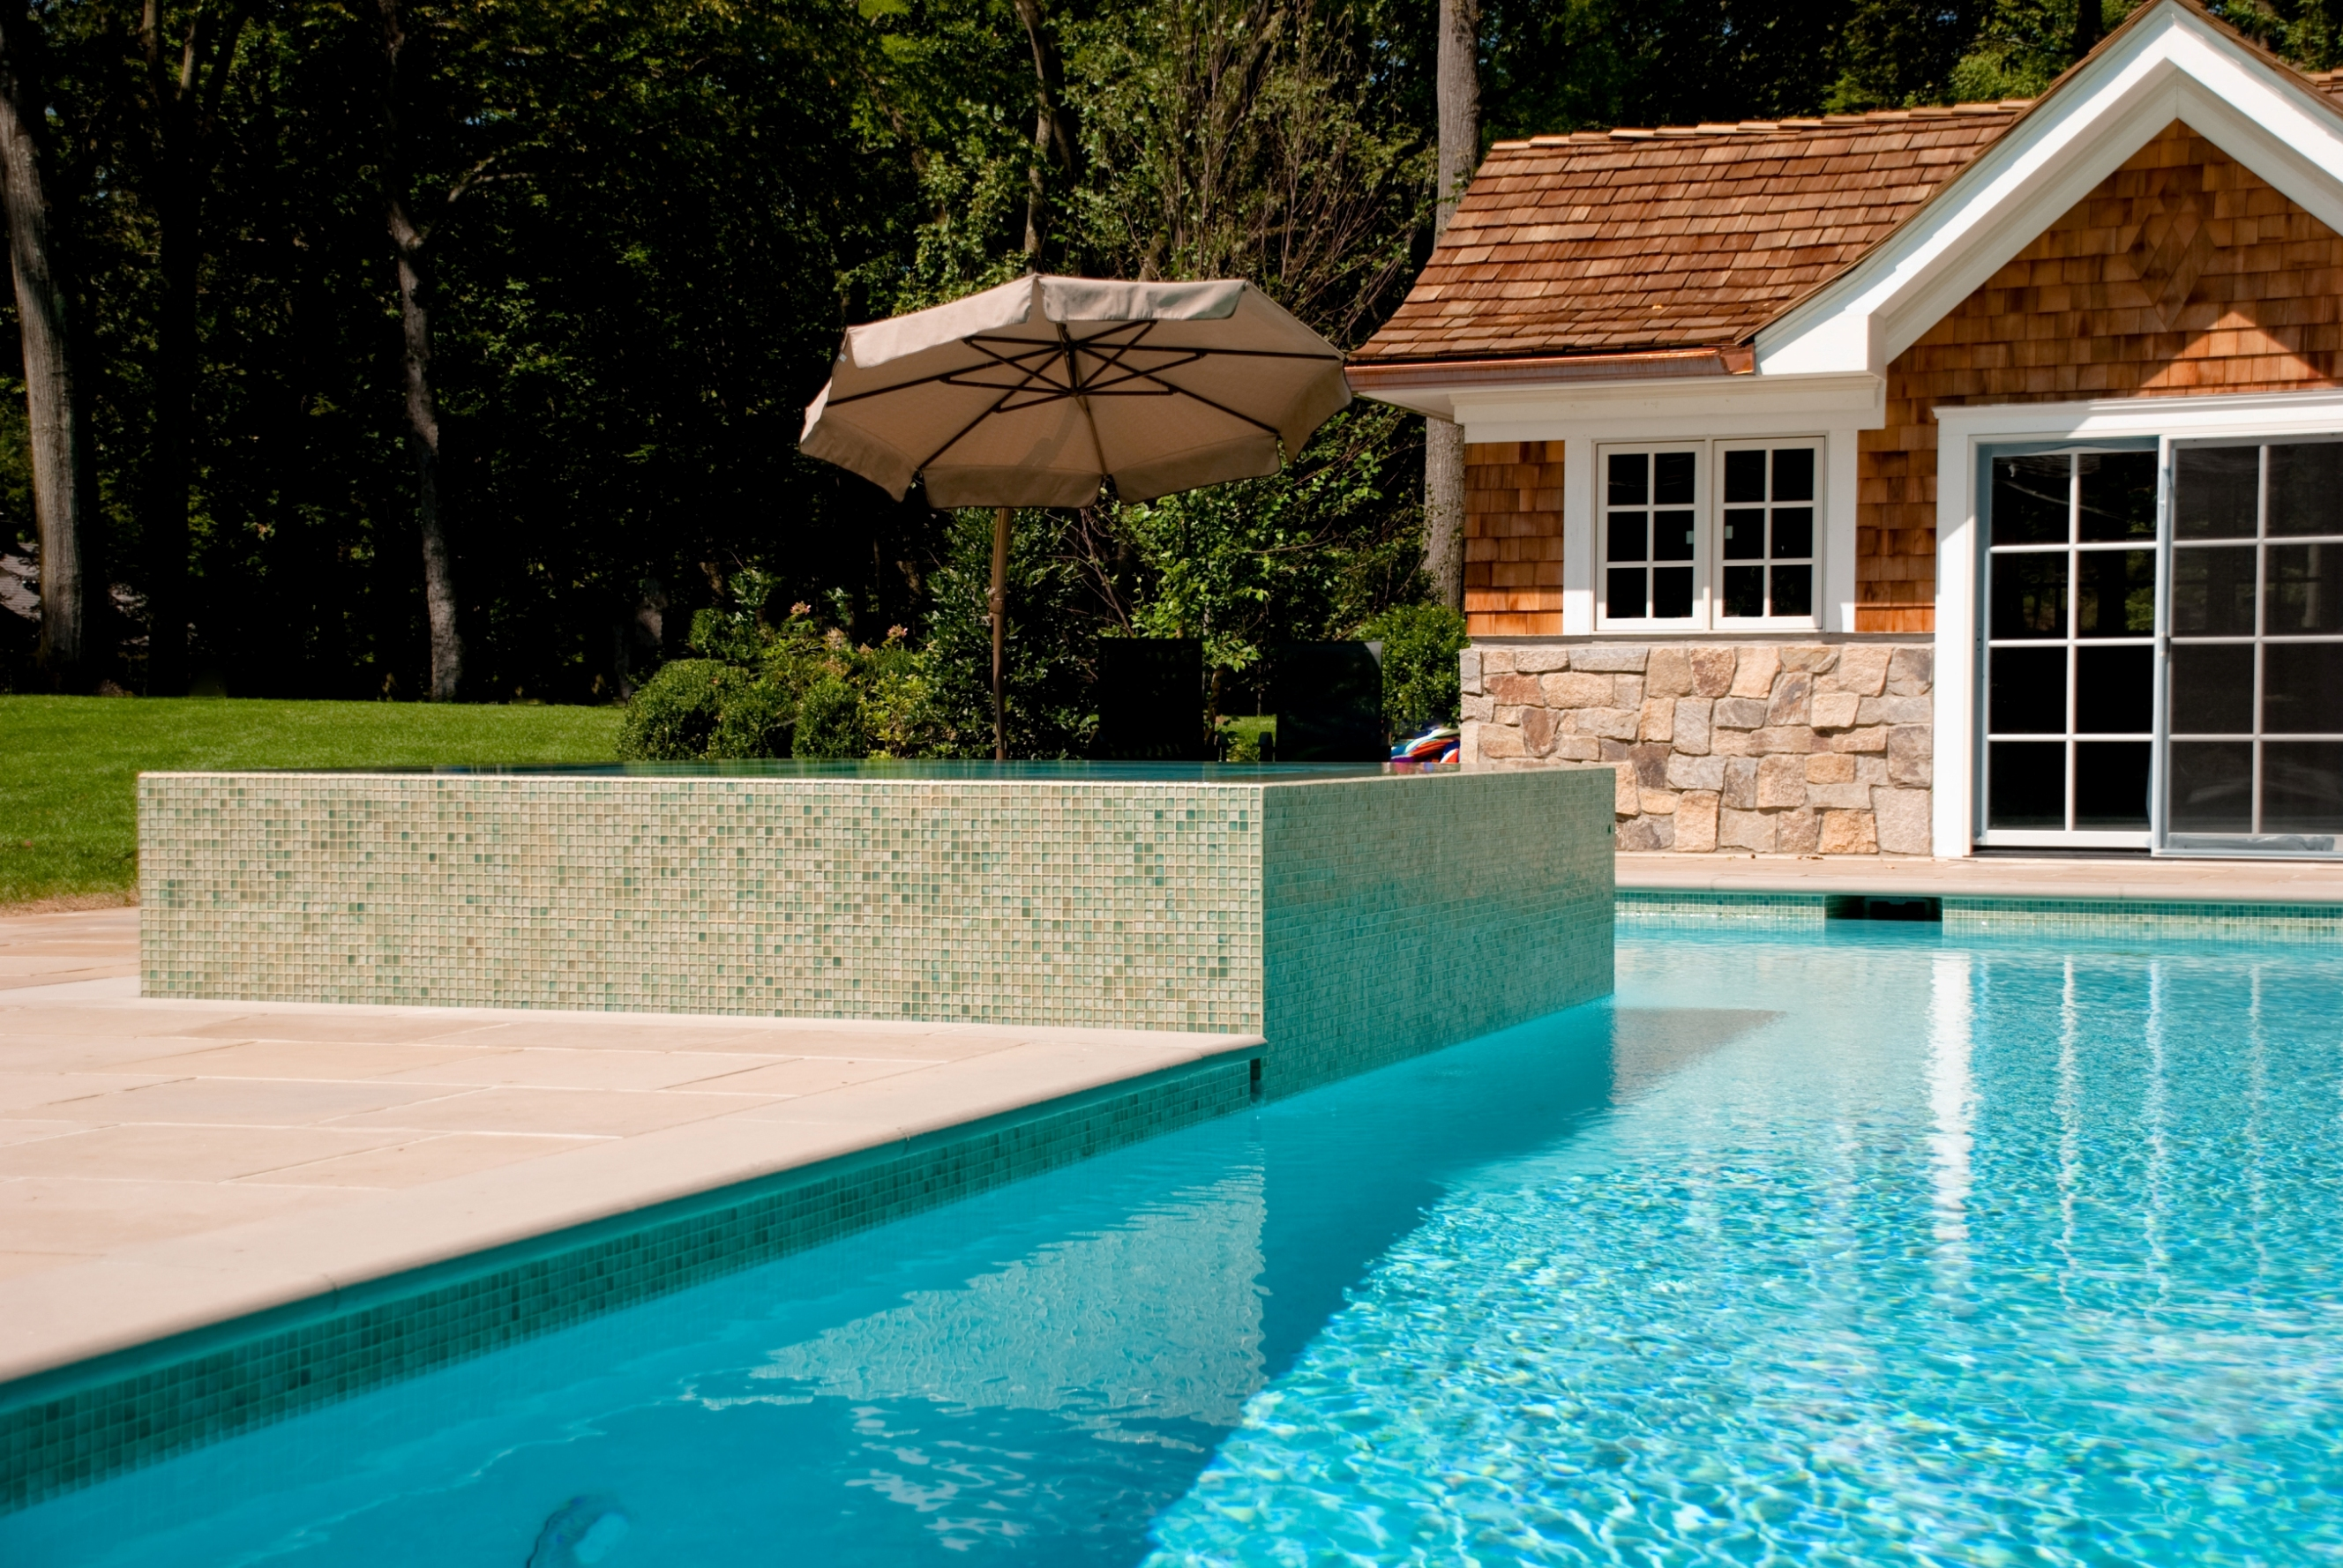 Nj perimeter overflow pool and spa by cipriano custom for Spa and pool